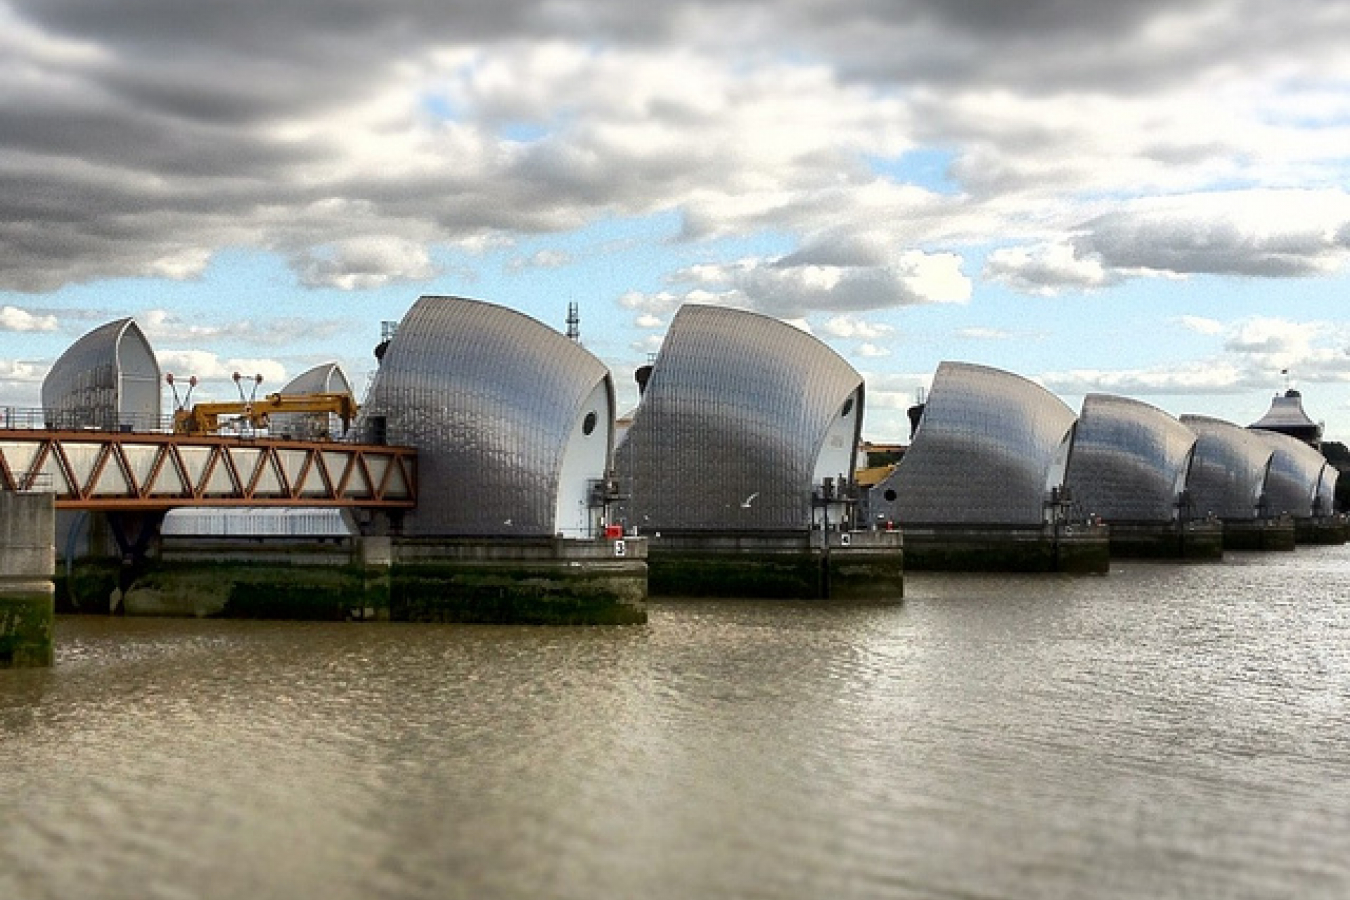 Thames Barrier, Newham, London, UK